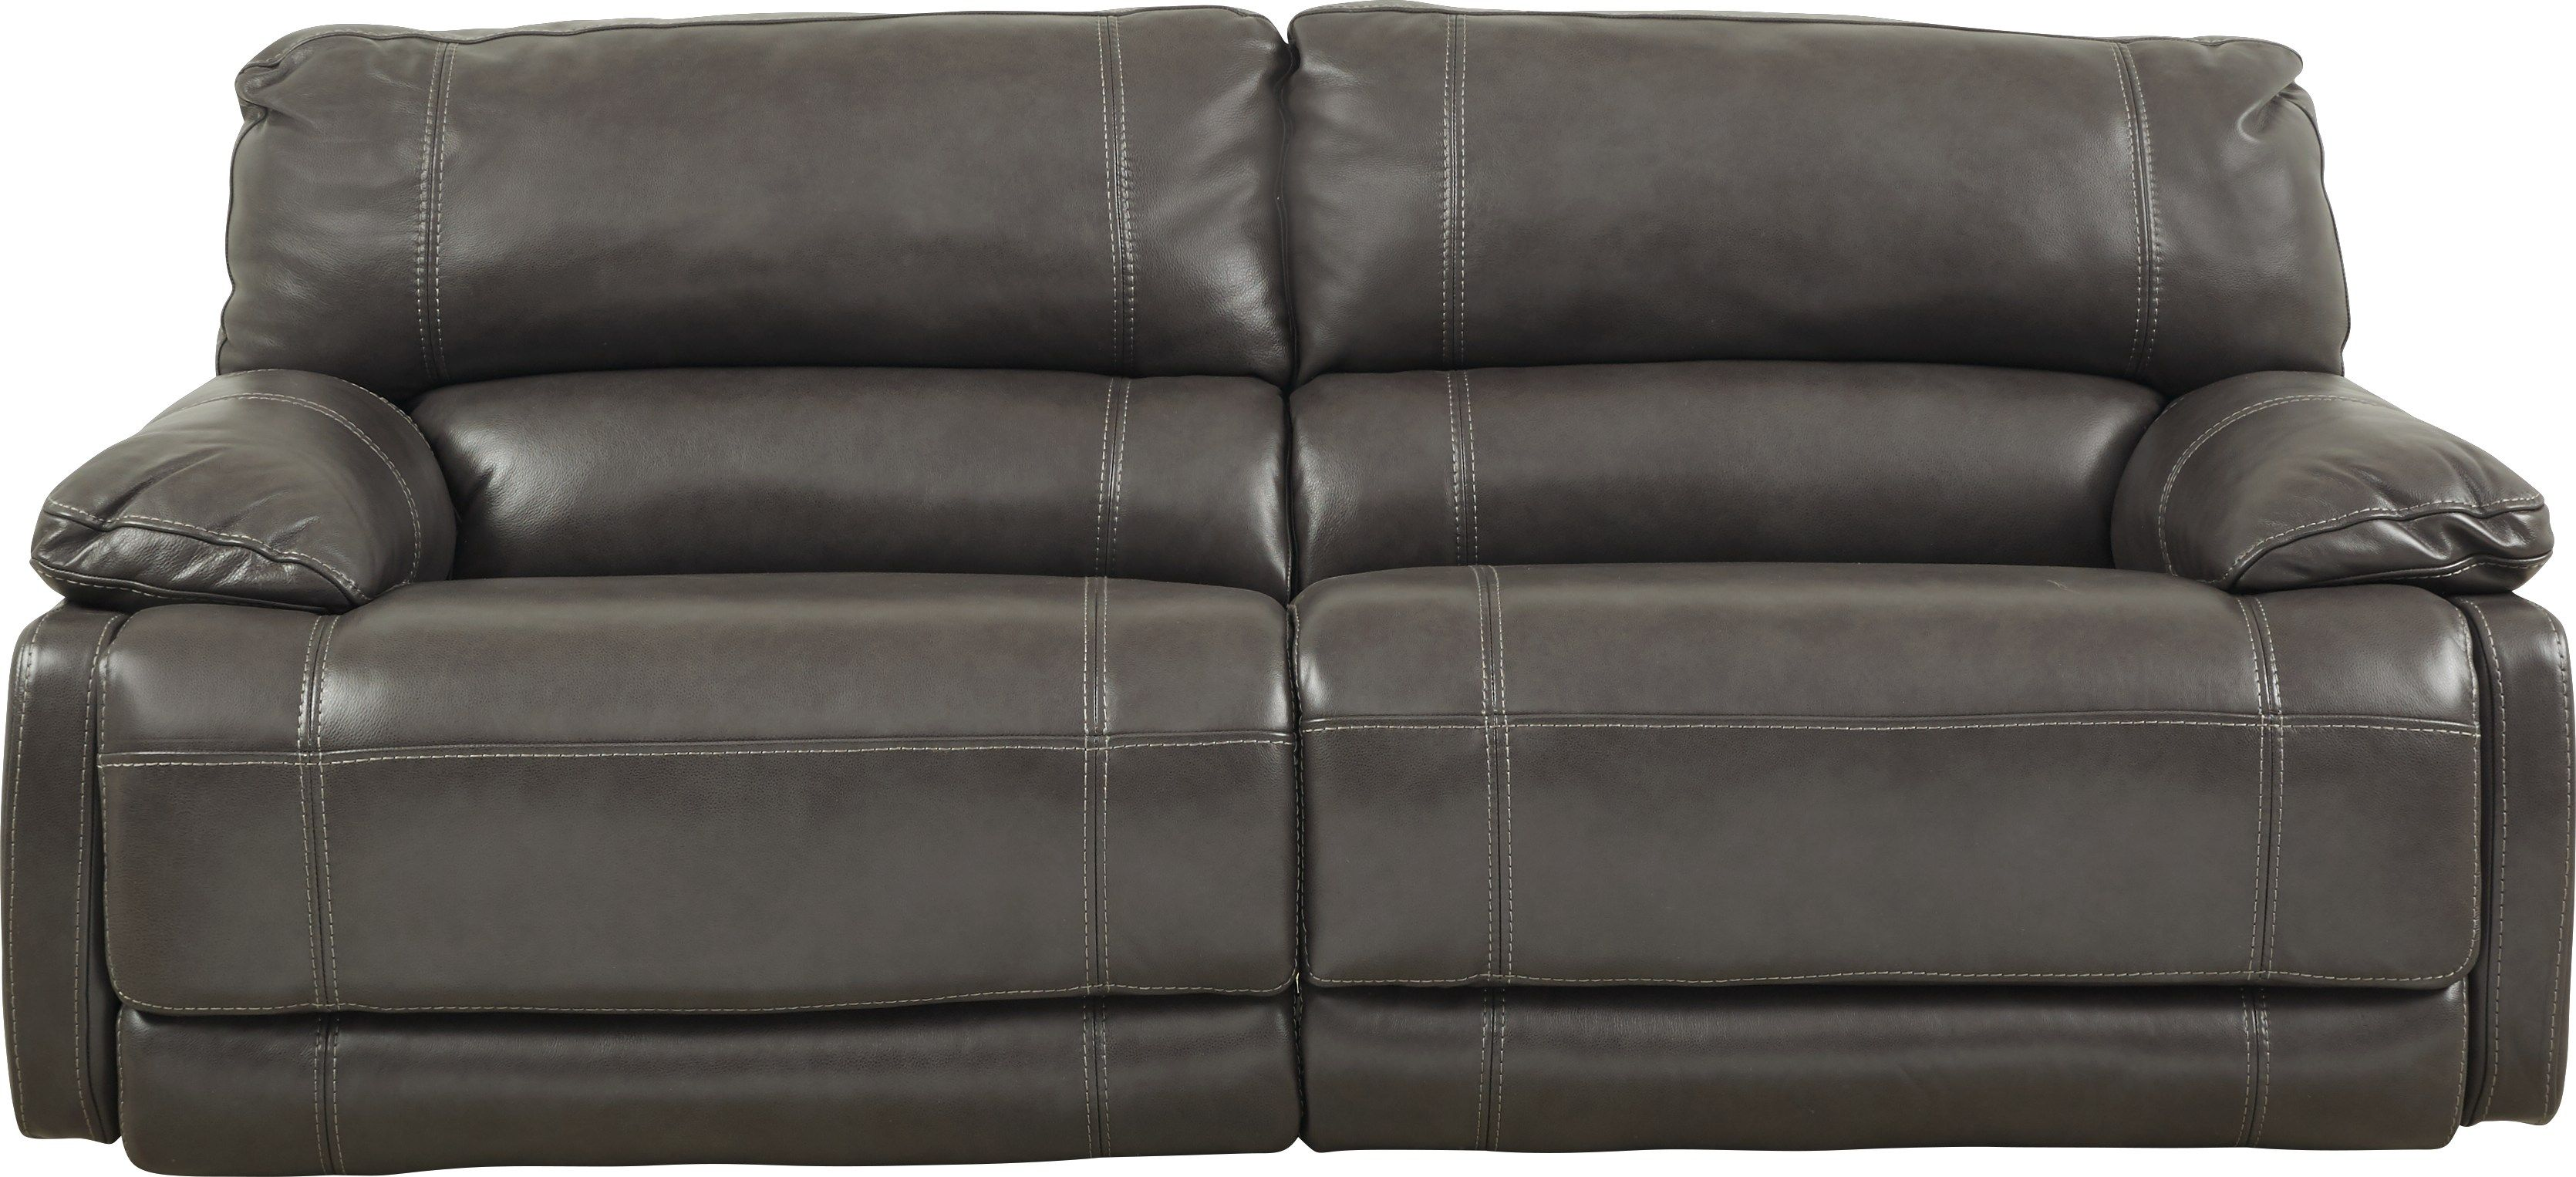 Cindy Crawford Home Auburn Hills Leather Steel Power Reclining